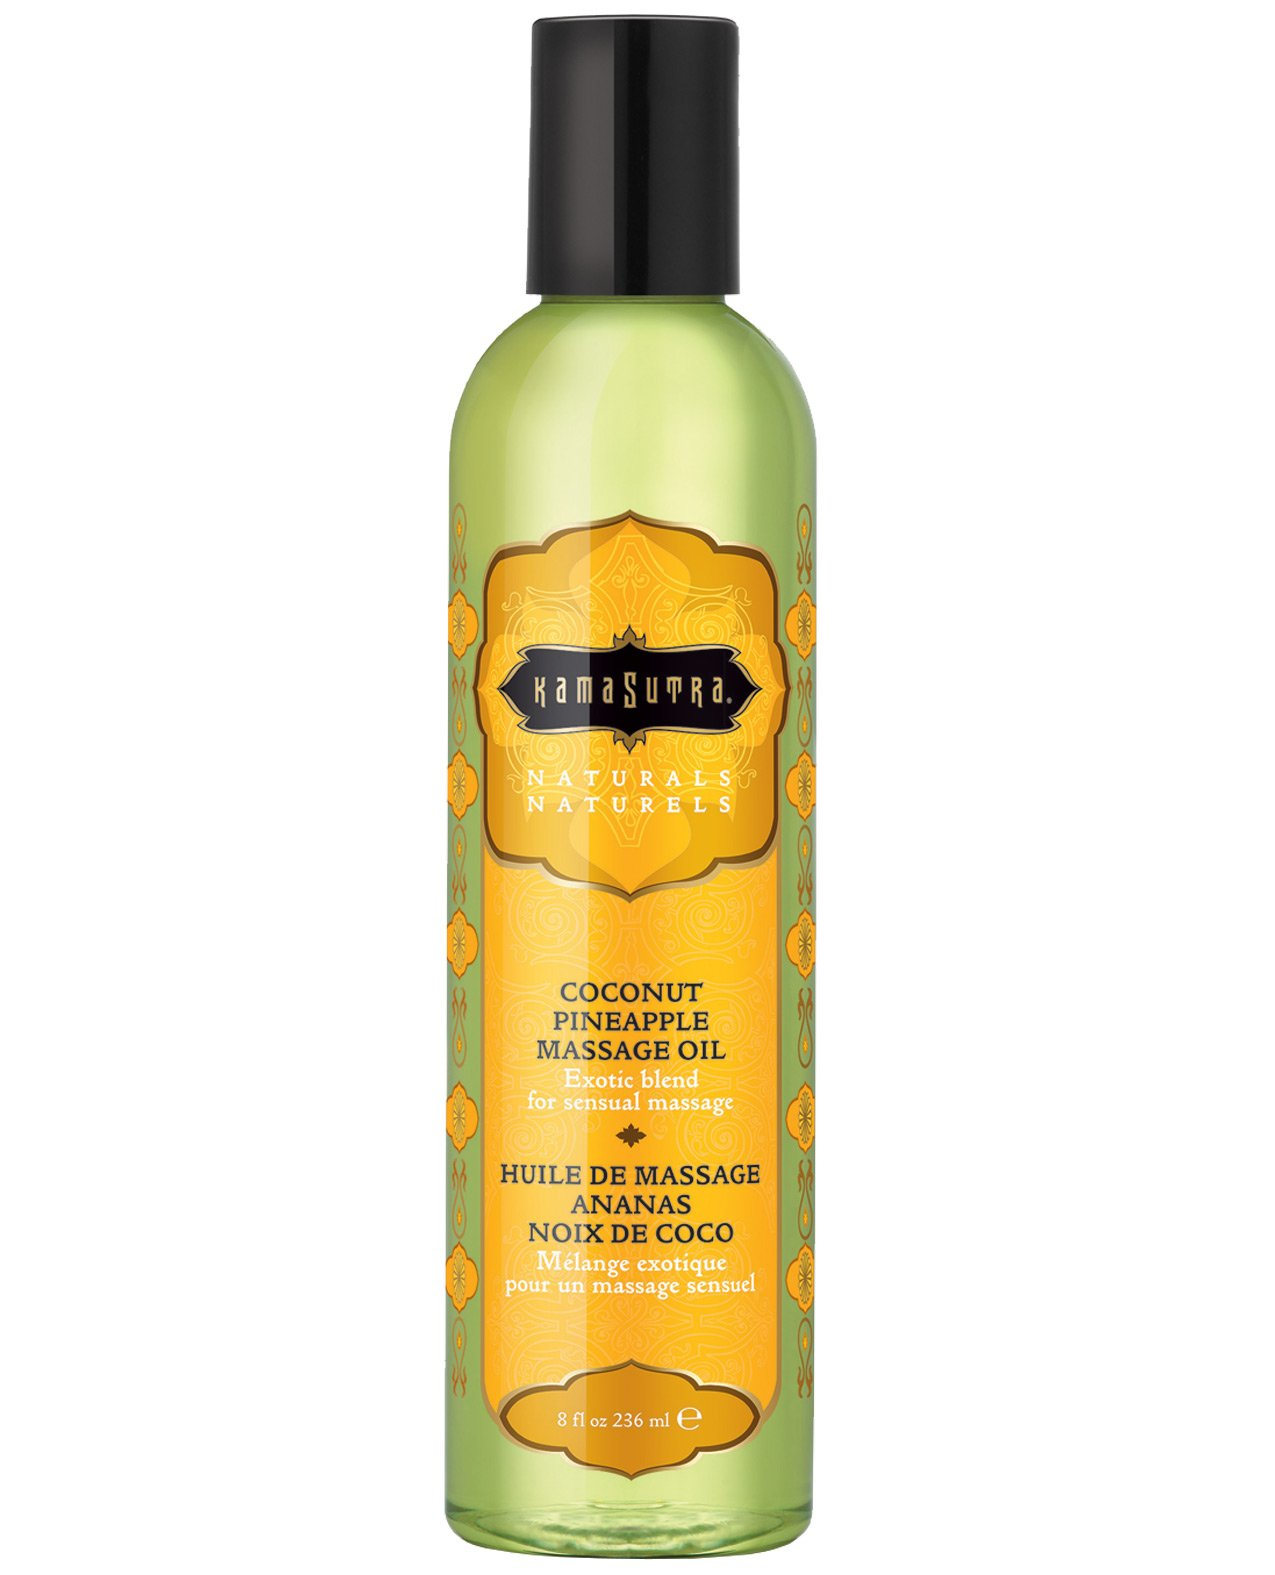 Kama Sutra Naturals Massage Oil - Coconut Pineapple by Sex Toys Online Store